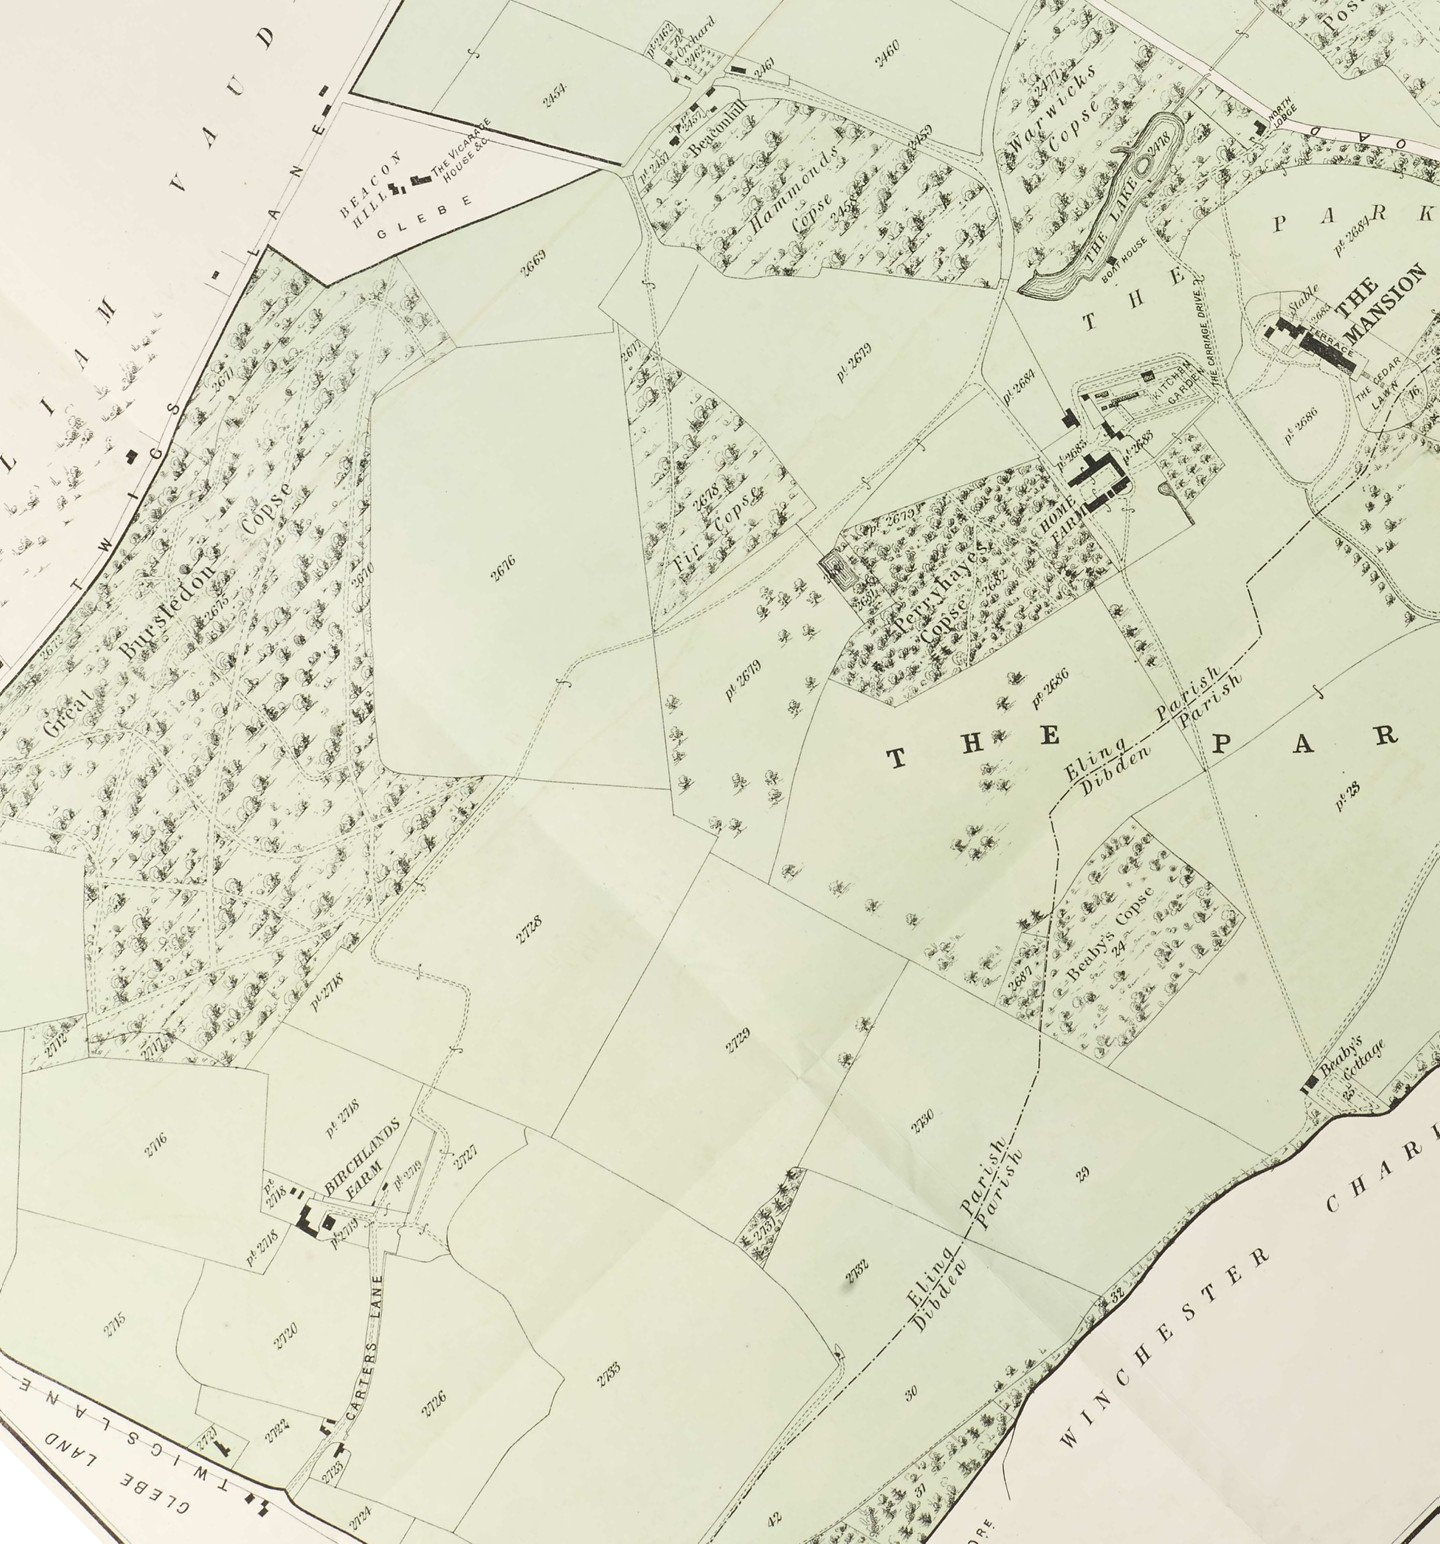 Close up section of a map